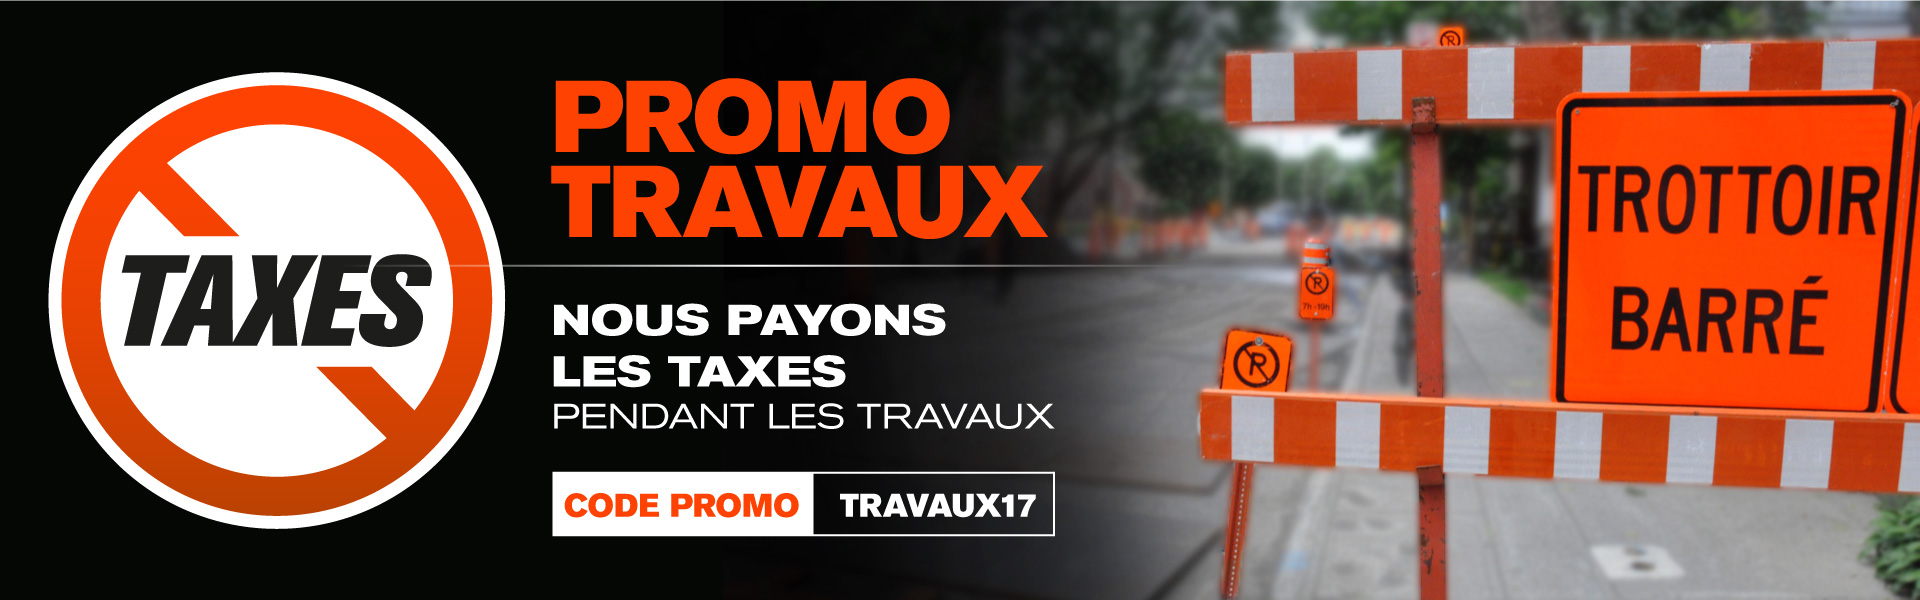 Travaux 2017 avenue mont royale